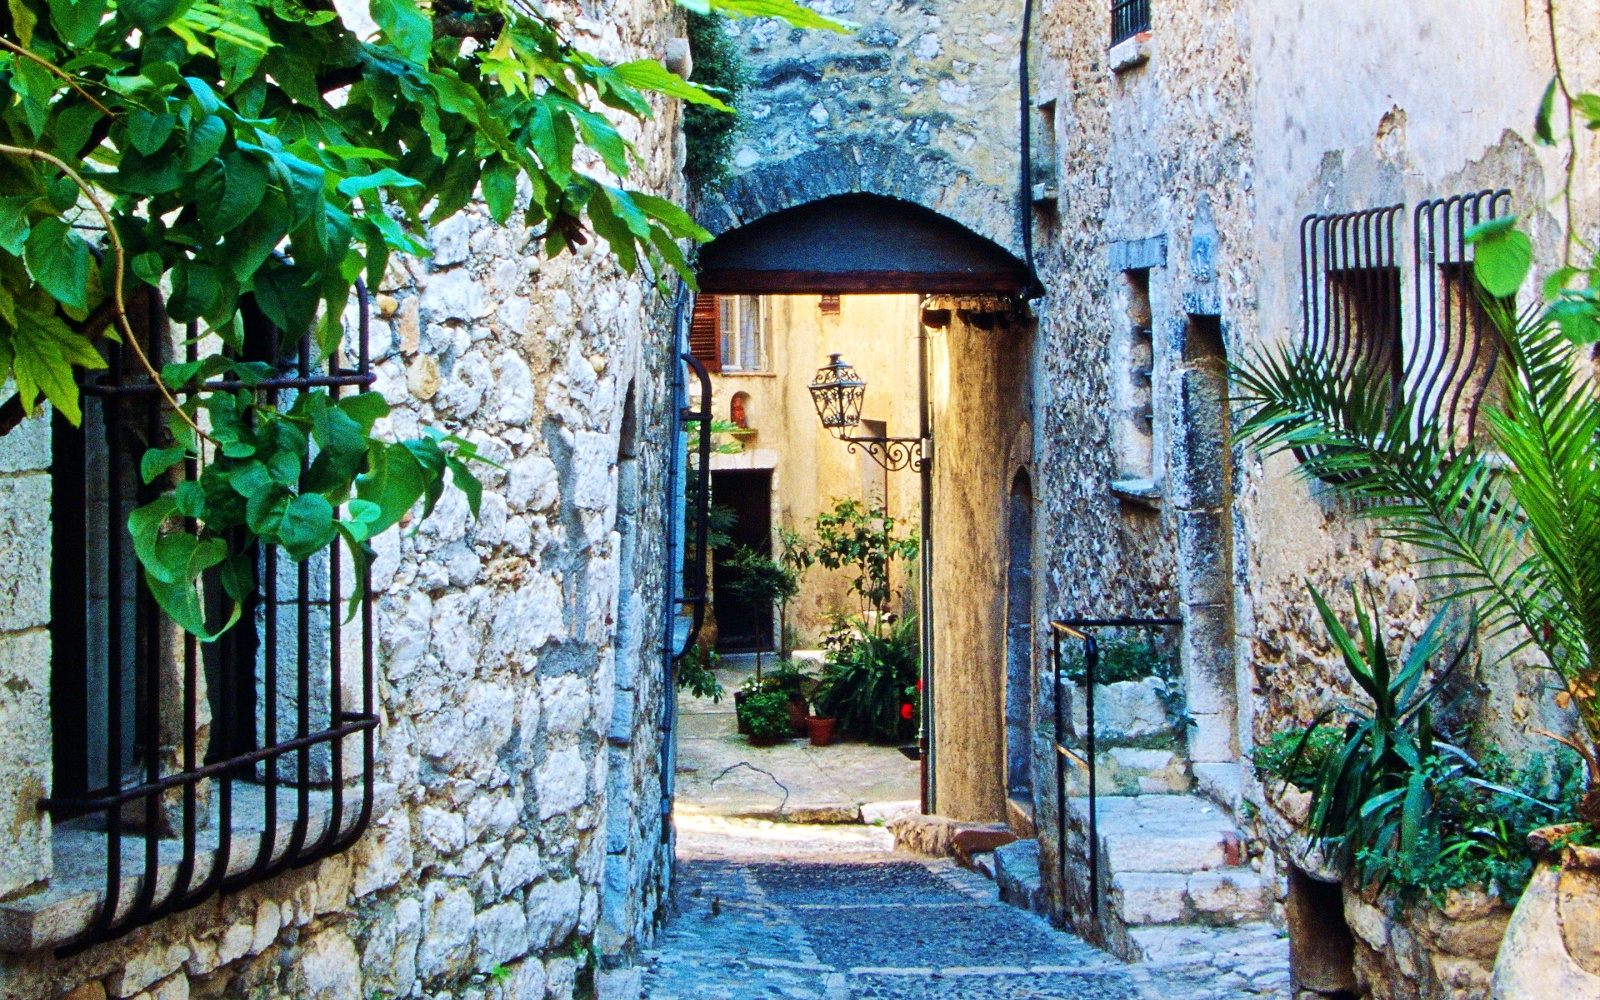 Financial Planning Companies. beautiful stone path and doorway with flowers